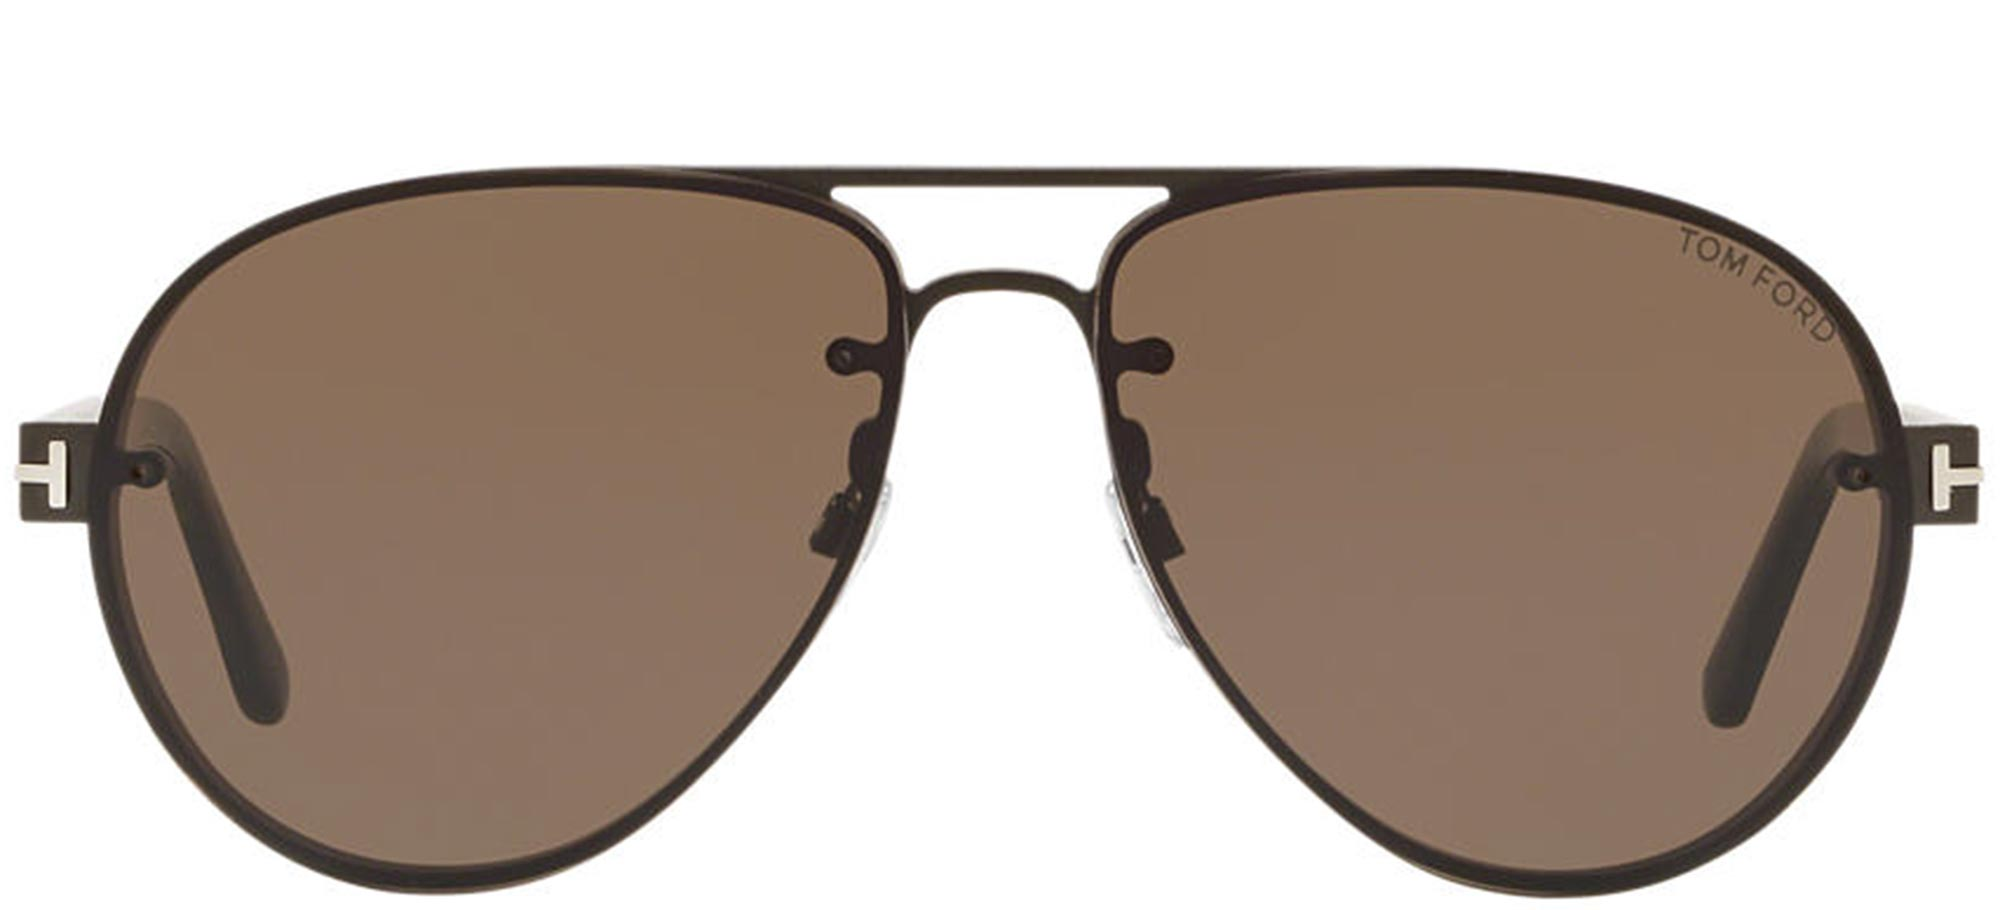 Tom Ford ALEXEI-02 FT 0622